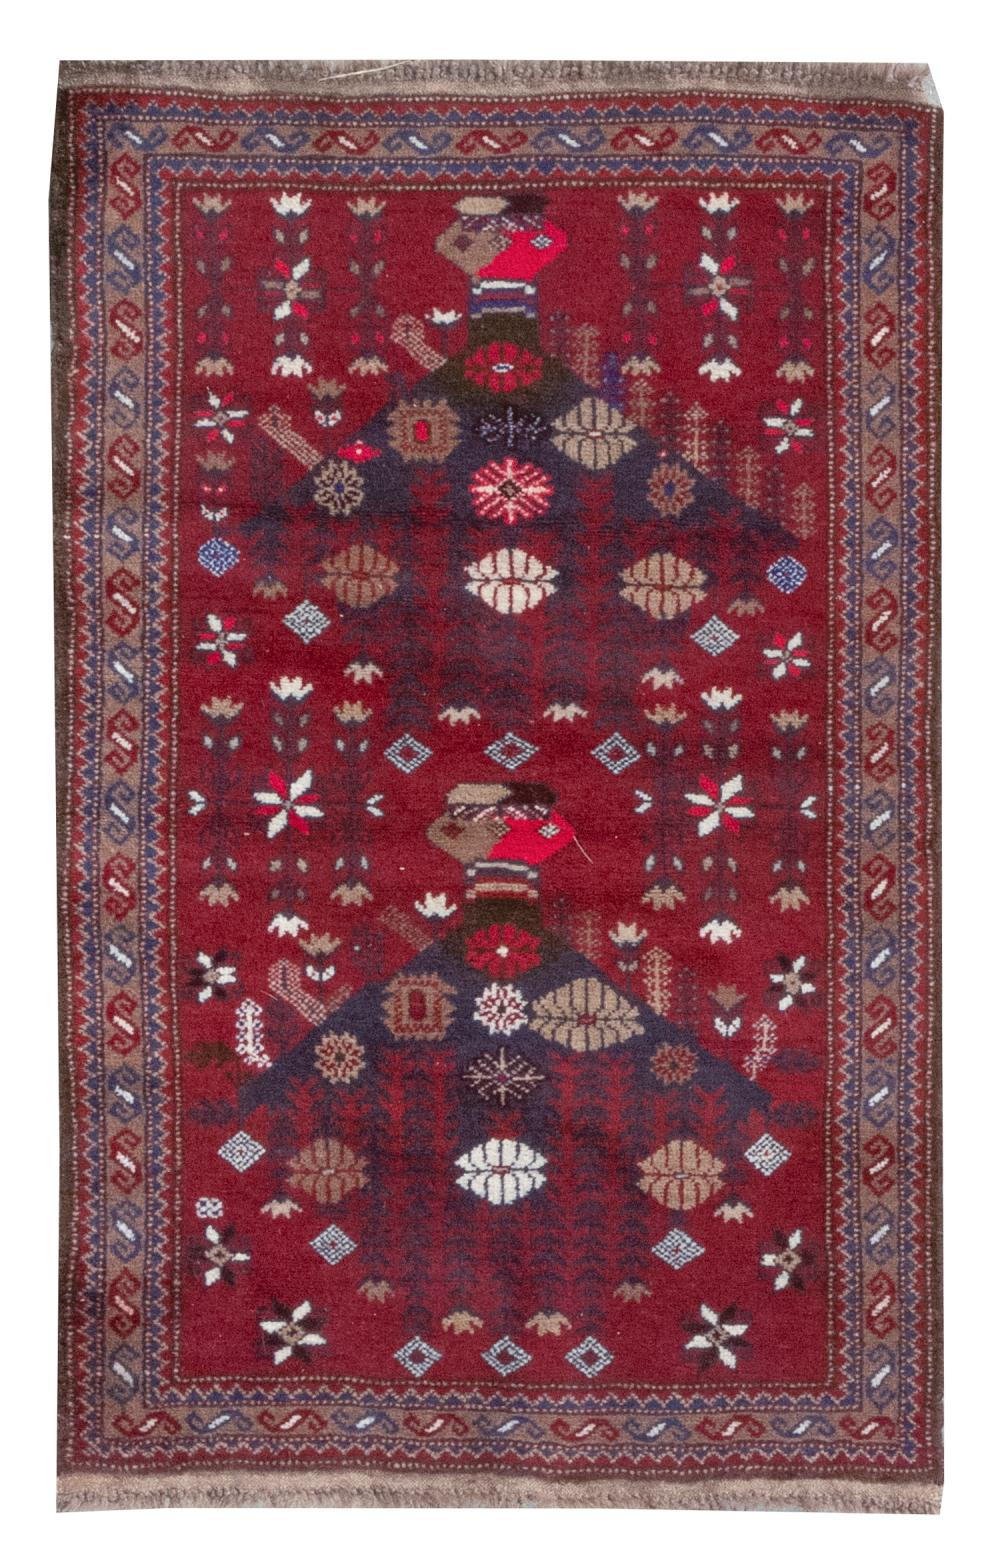 "ORIENTAL RUG: BELOUCH PRAYER 2'7"" x 4'2"" Dark red field with blossoms and delicate branches throughout, and unusual charcoal and dar."